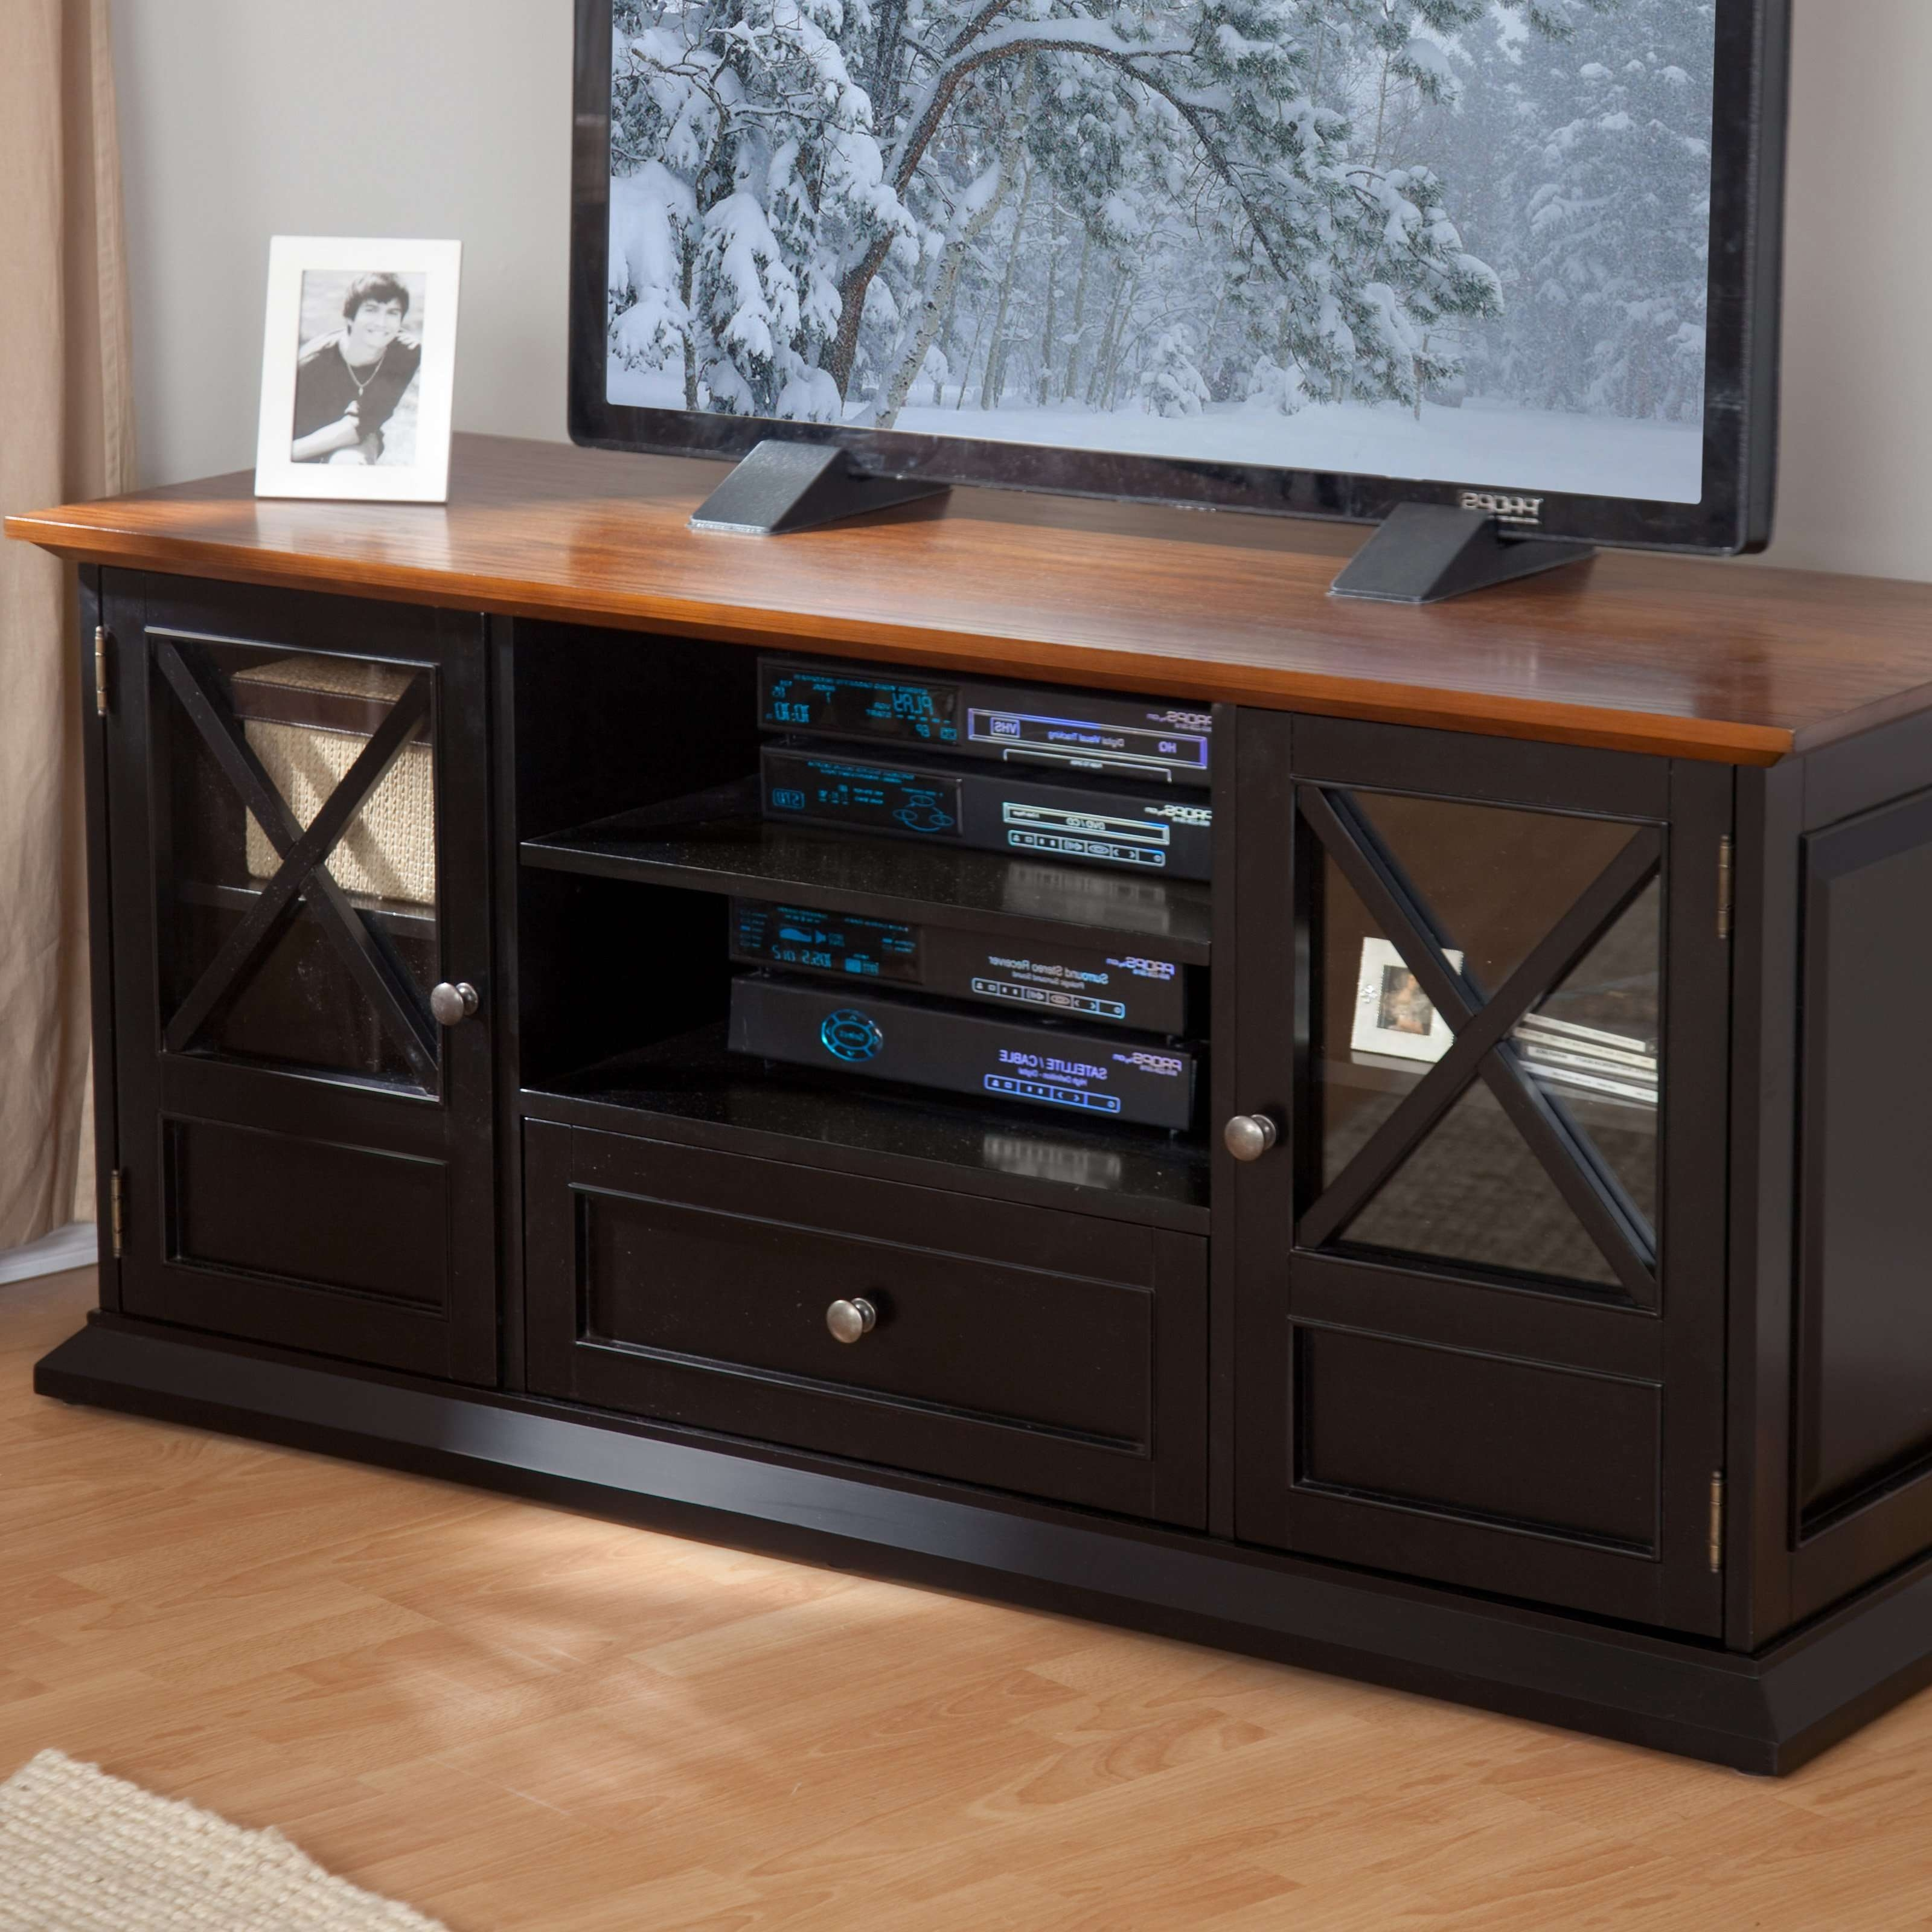 Belham Living Hampton Tv Stand – White/oak | Hayneedle Intended For Tv Stands For 55 Inch Tv (View 2 of 15)